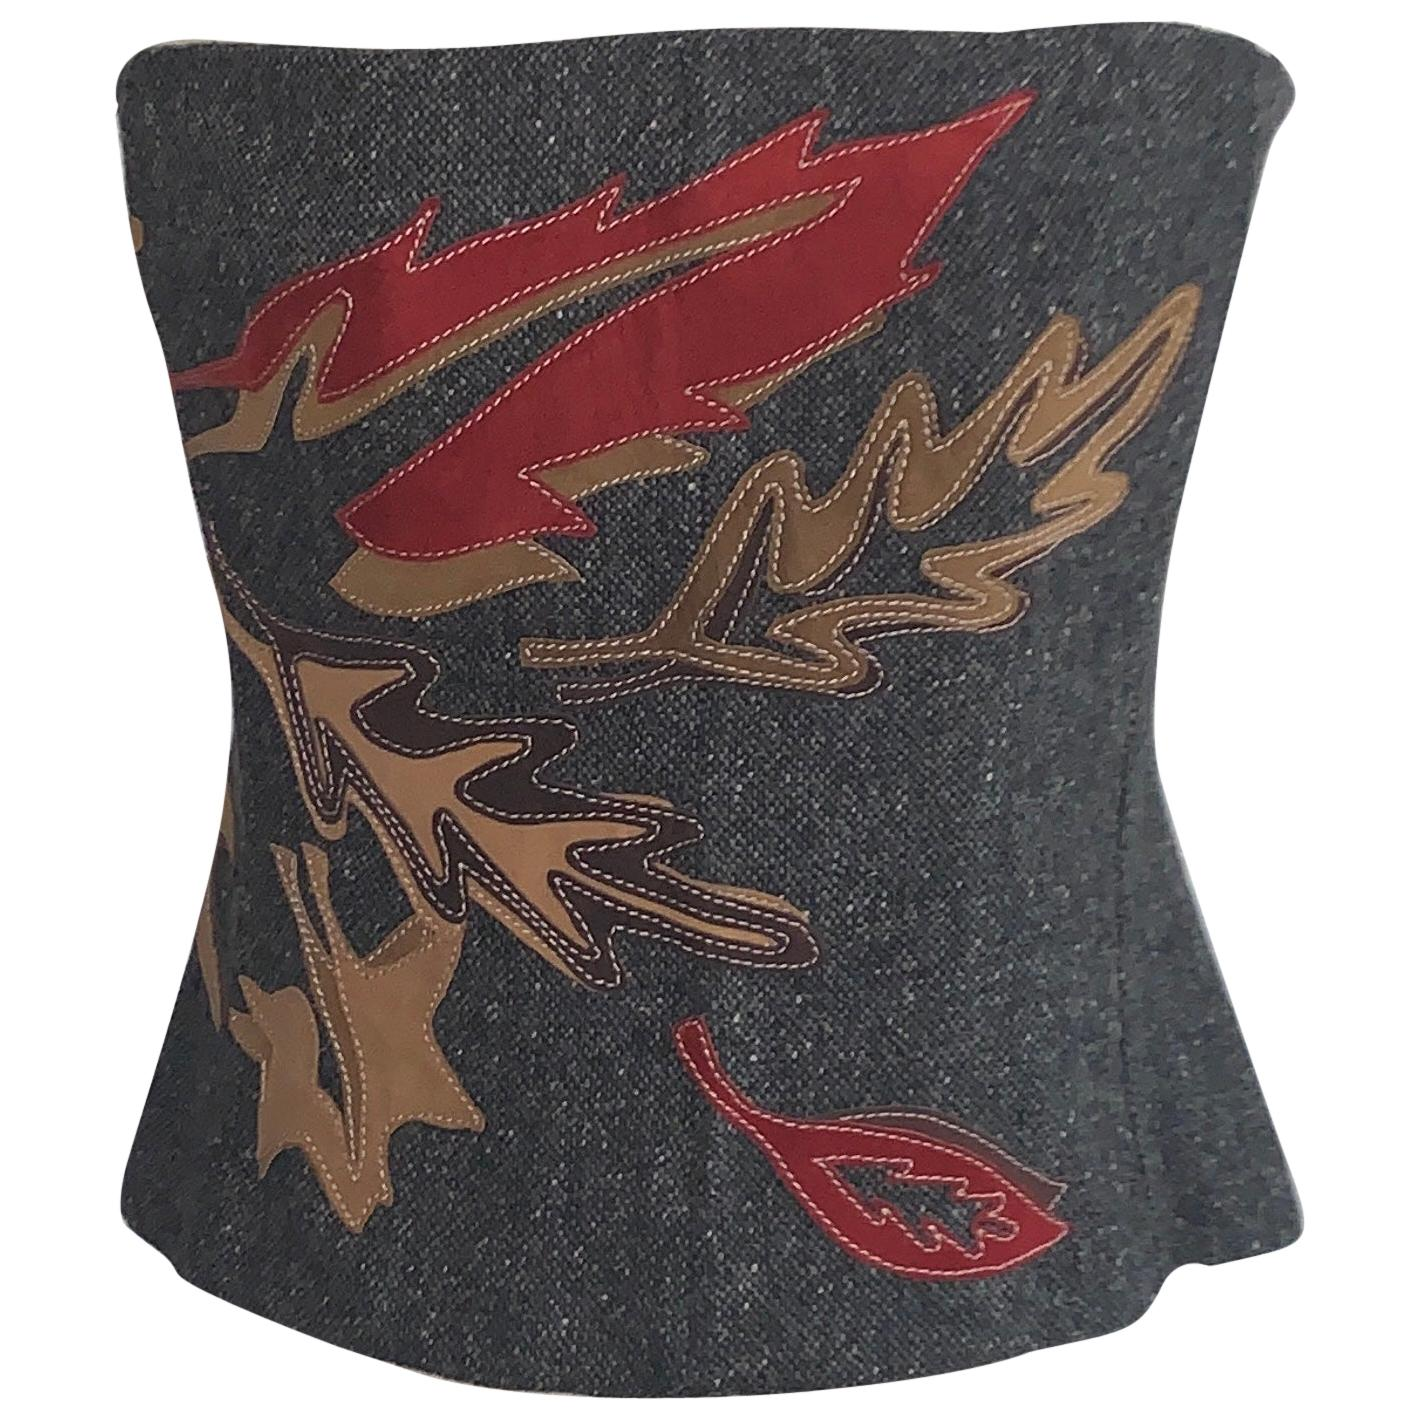 Dolce & Gabbana Leather Accent Leaf Corset Bustier in Grey Tweed